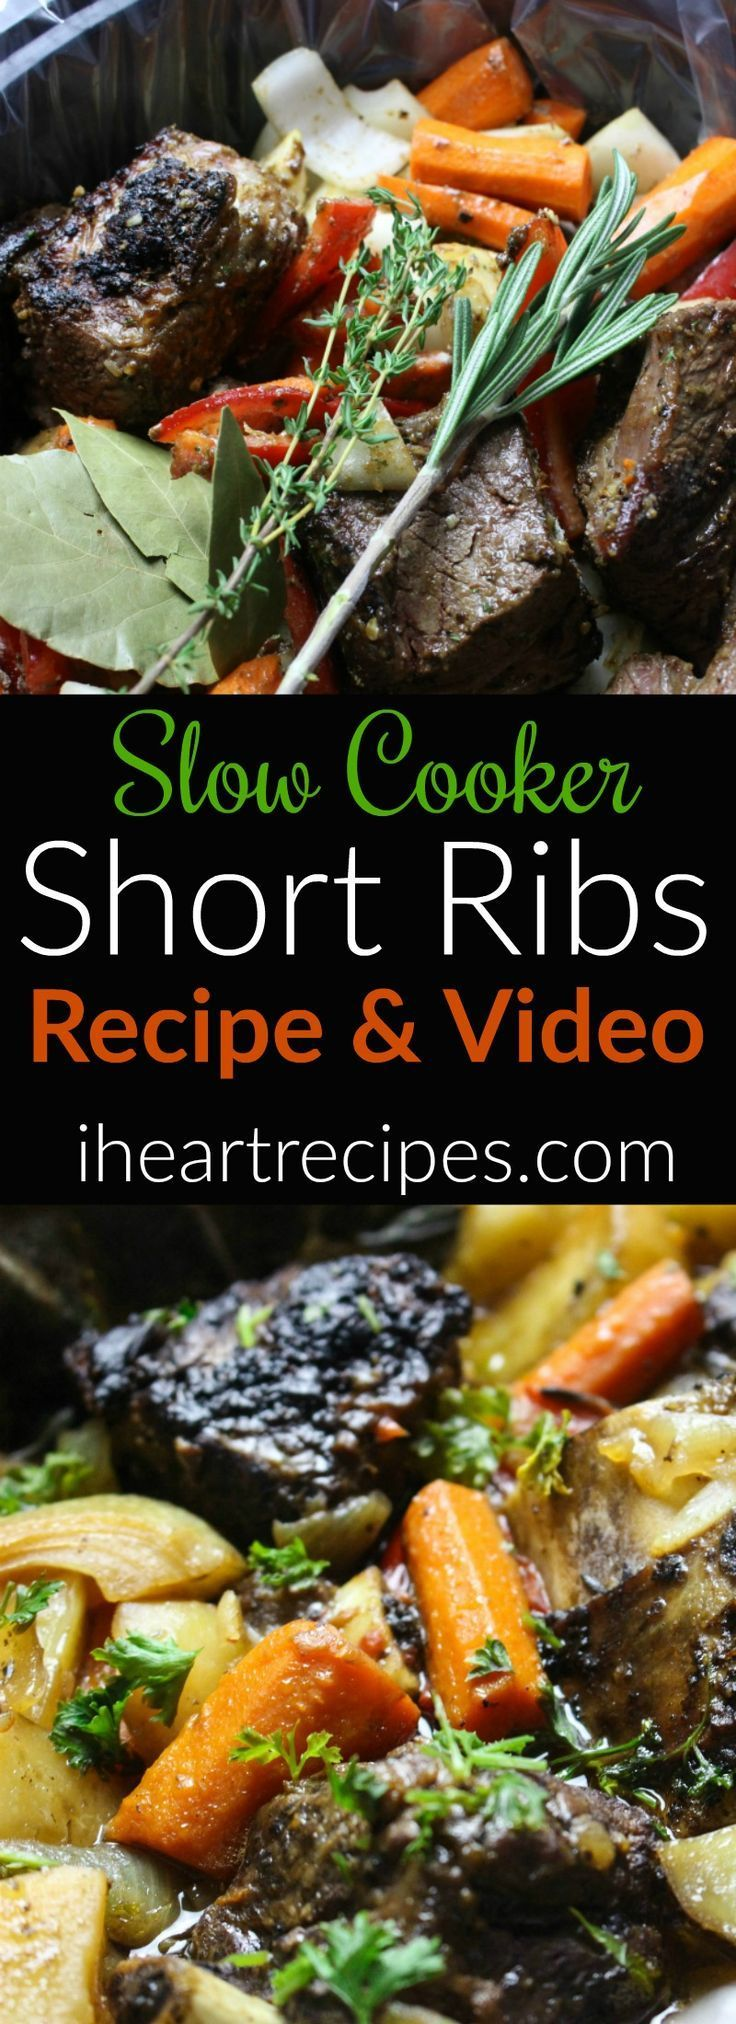 Easy short ribs recipe made in the slow cooker. This is seriously the best beef short ribs recipe ever! I love beef short ribs. However, I don't like a lot of the complicated recipes, nor steps associated with beef short ribs. I've come up with the best easy slow cooker short ribs recipe ever, and I just have to share it with you all. I swear this is a quick short rib recipe, because all you have to do is a little prep & toss everything into the Crock-Pot, and you're good... T...